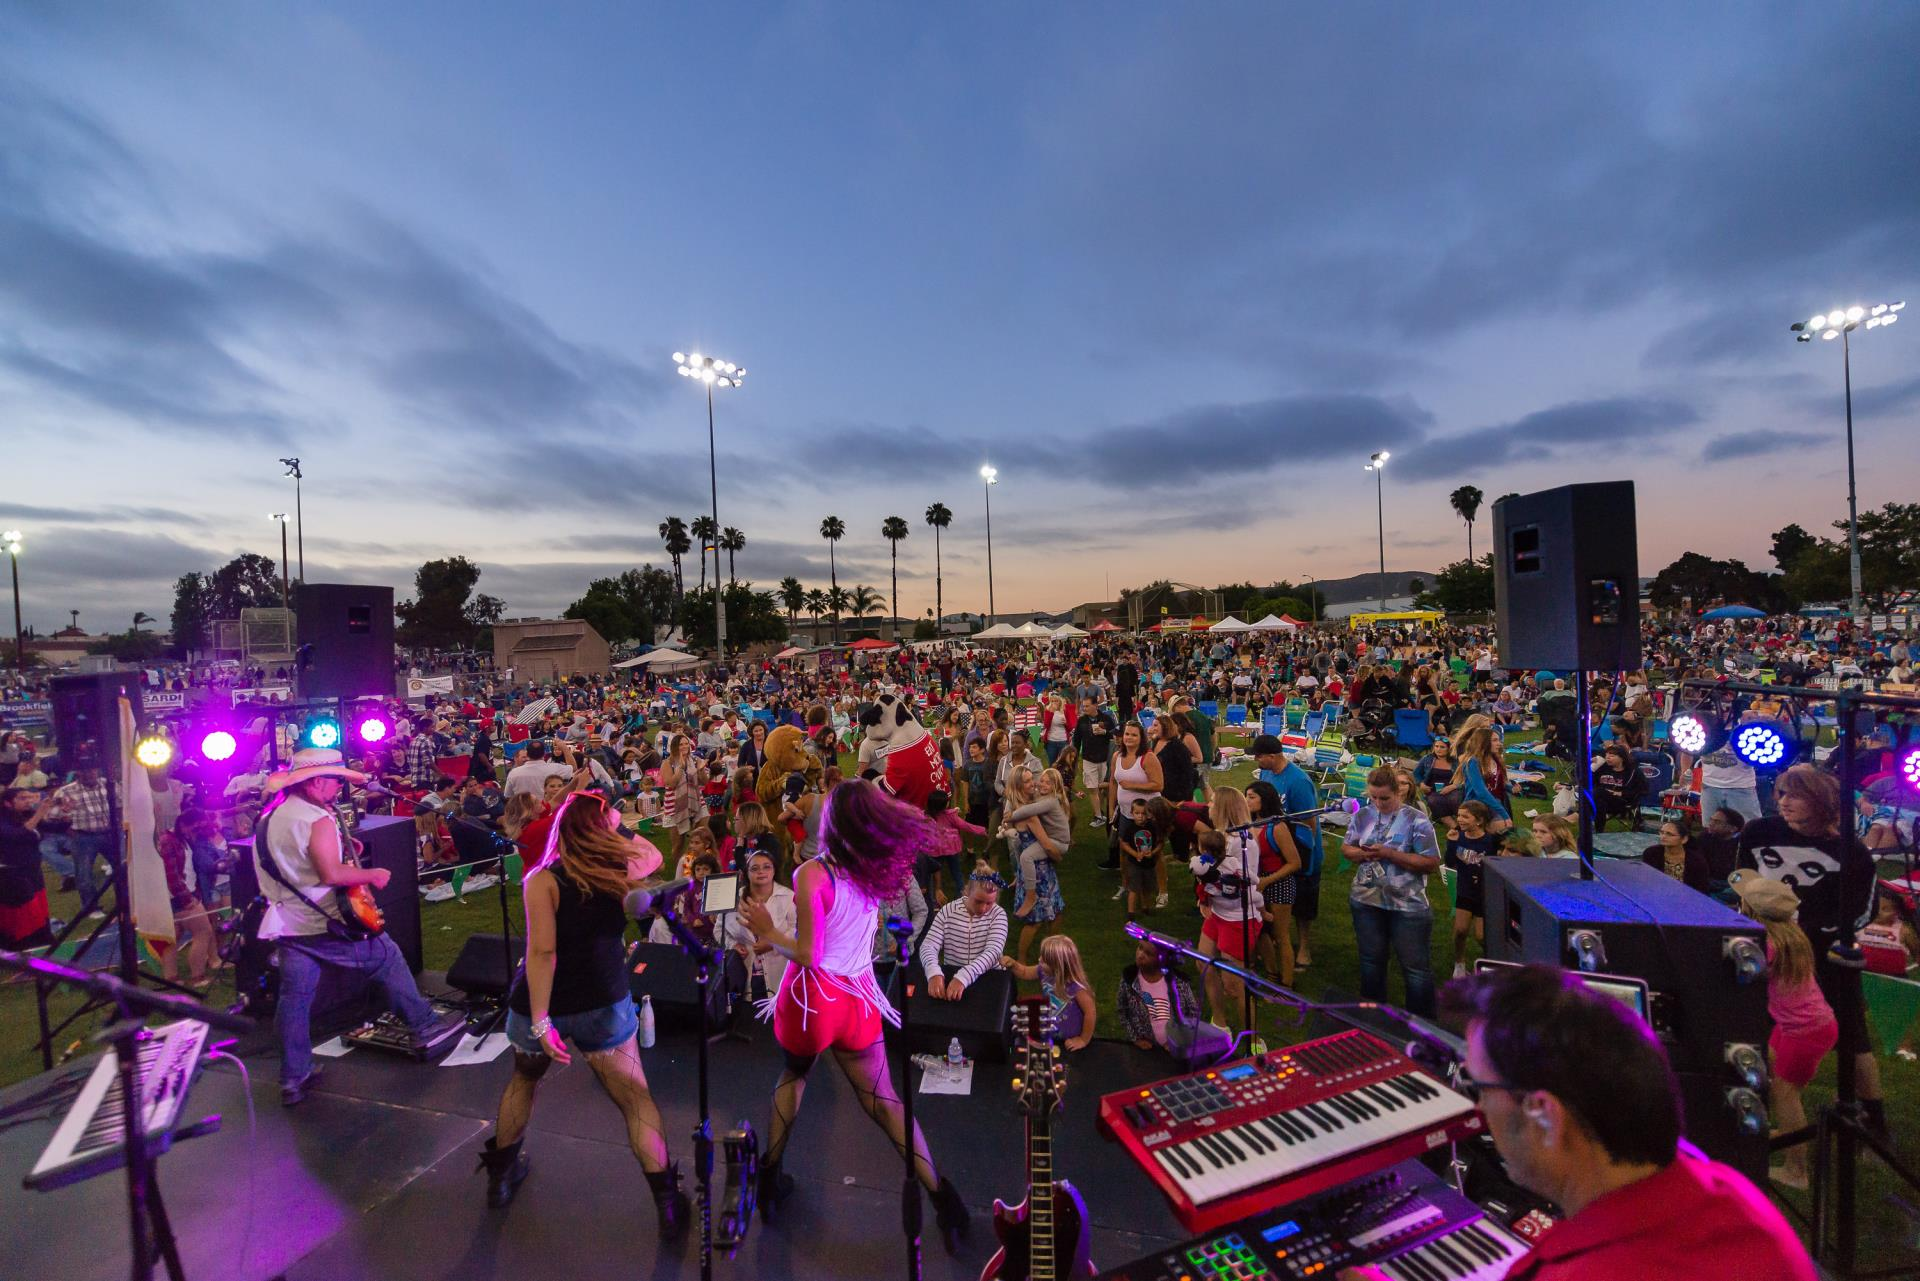 Liquid Blue band plays at Fourth of July event